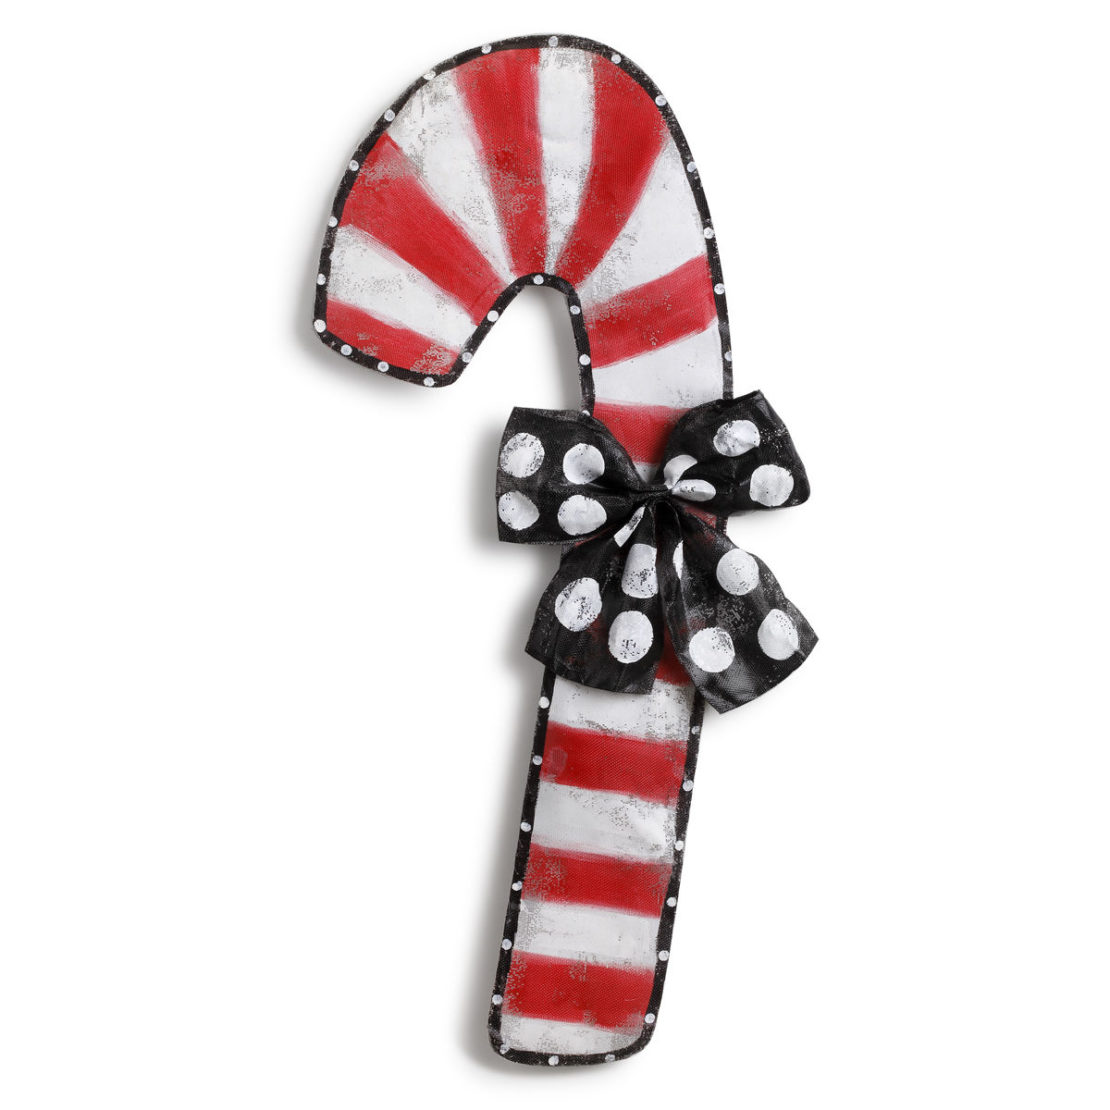 candy-cane-door-hanger